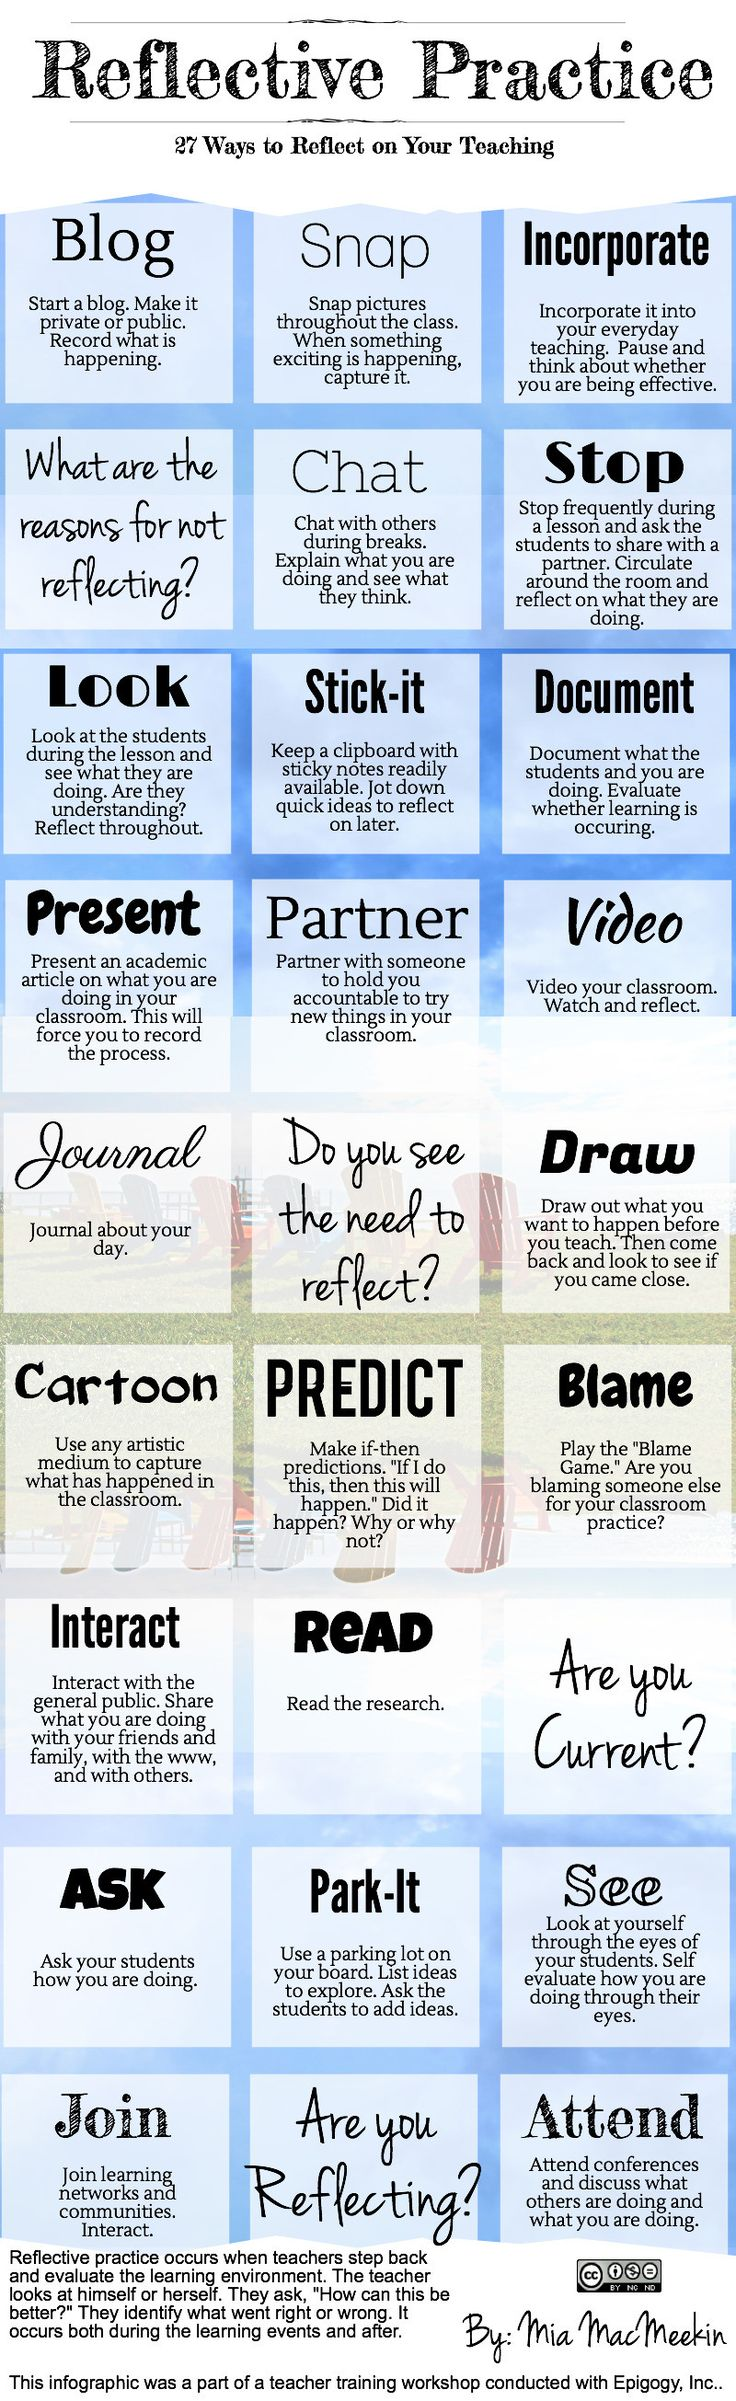 Reflection is an essential part of growing as a teacher. Here are 27 ways to reflect on your teaching.